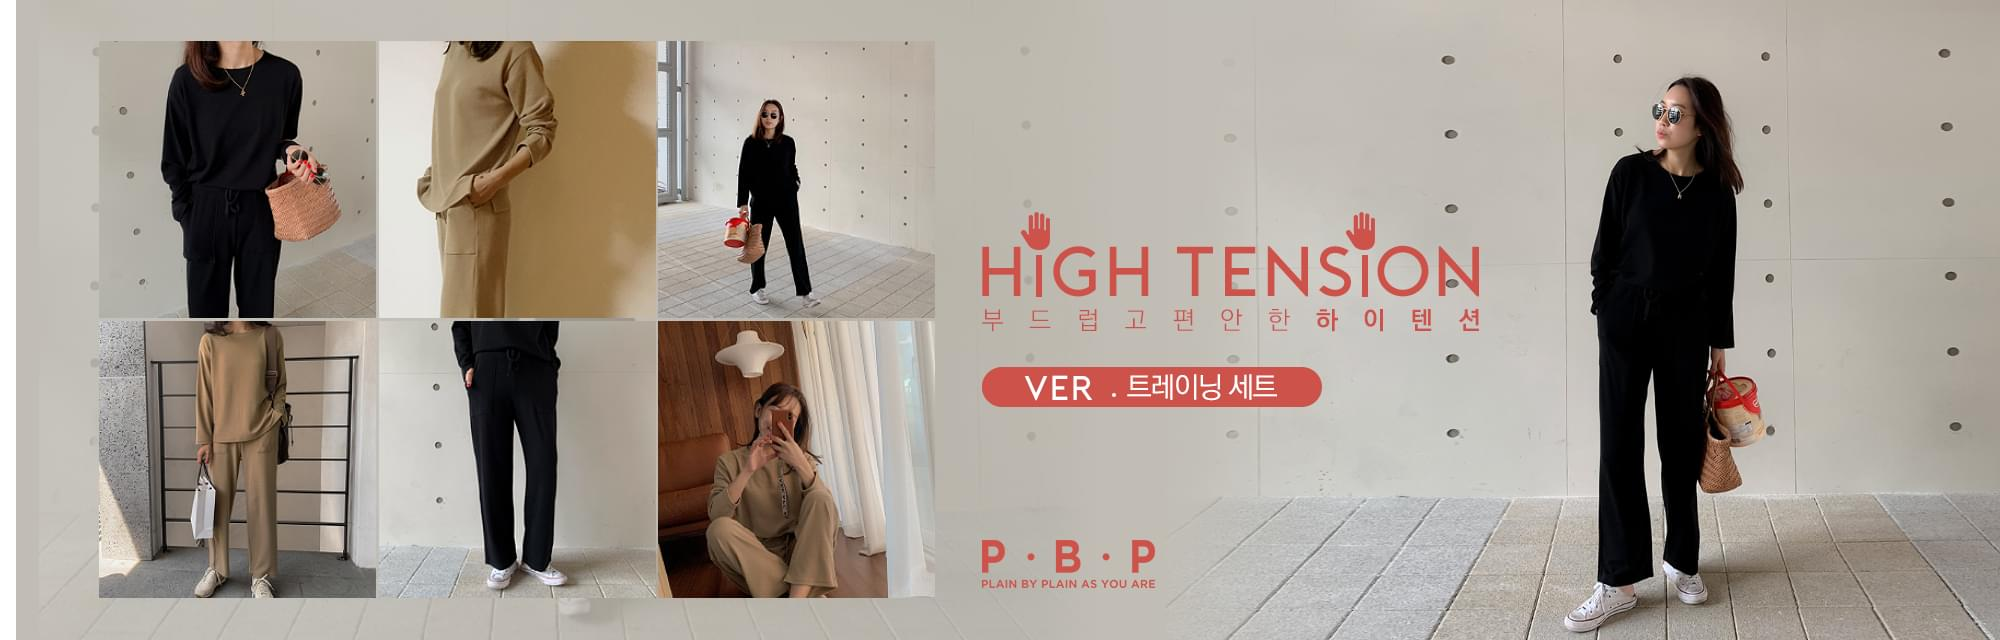 Self-produced / PBP. High tension ver. Training set